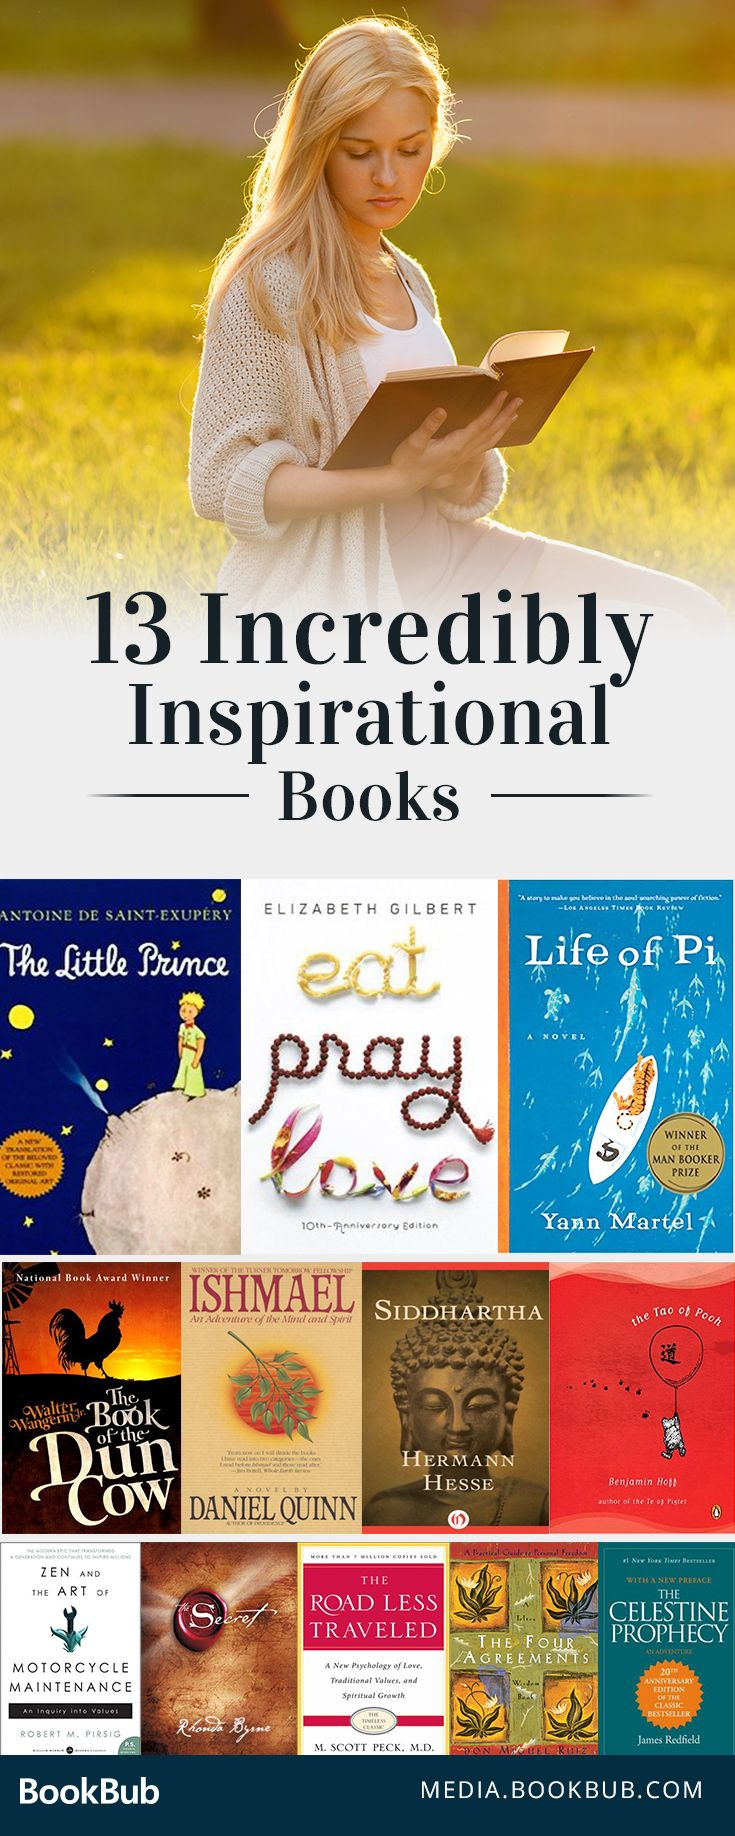 13 inspirational books to read. These books teach valuable life lessons and provide motivation for adults and teens alike.